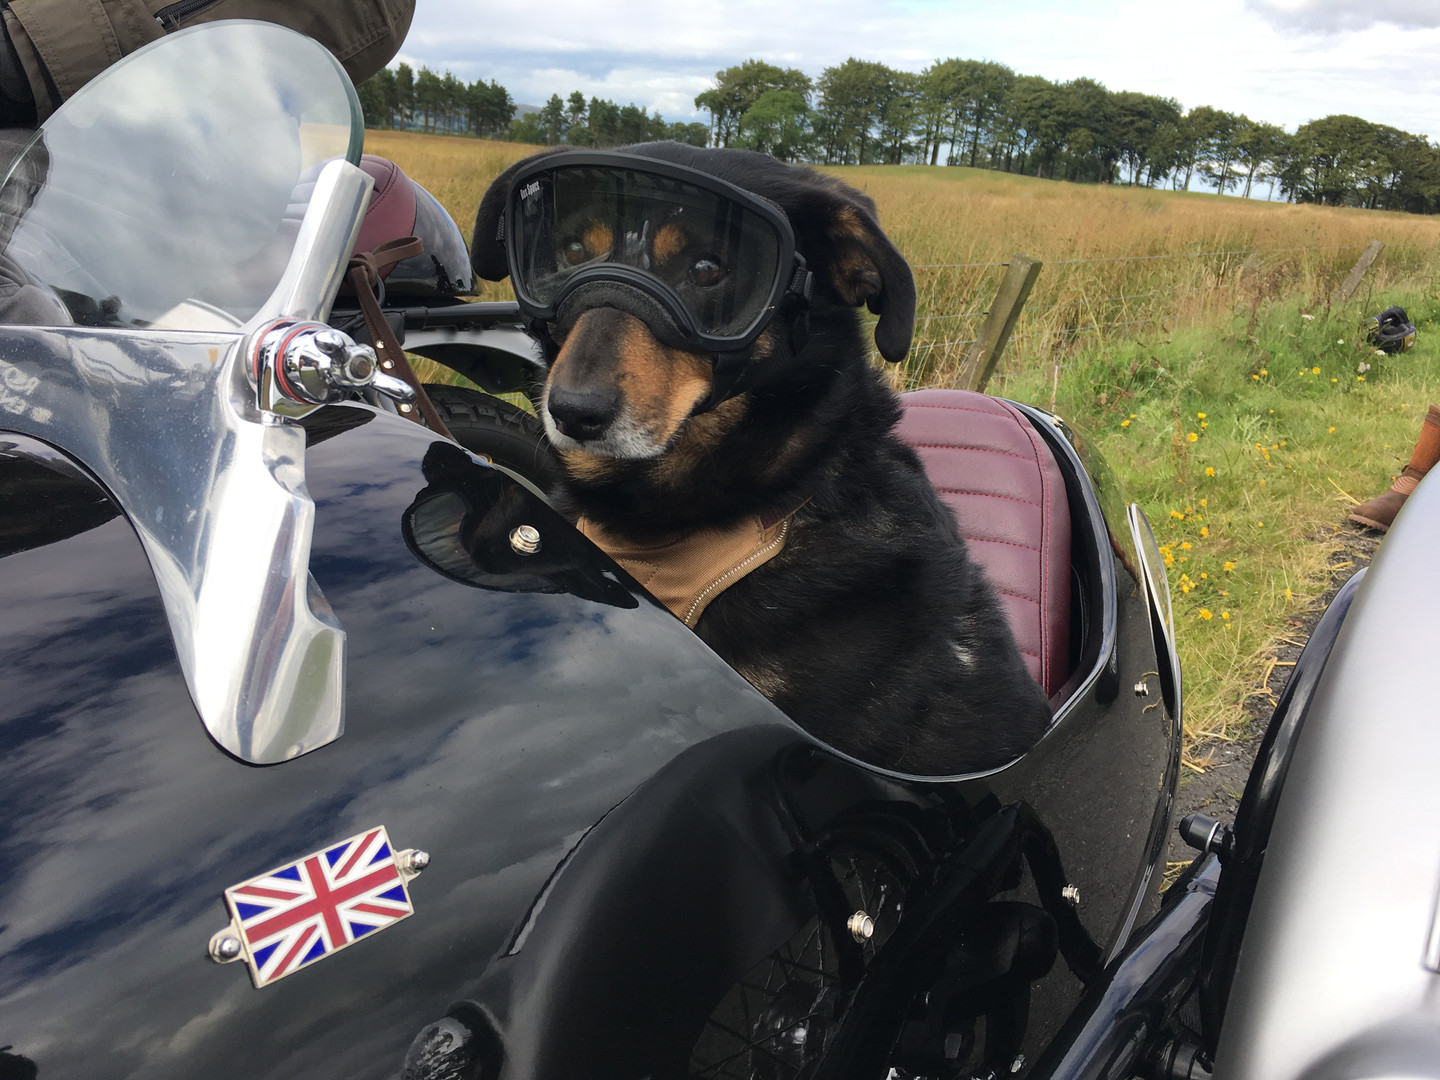 Gusto Motorbikes _ Royal Enfield 535GT sidecar combination and the Gusto garage dog